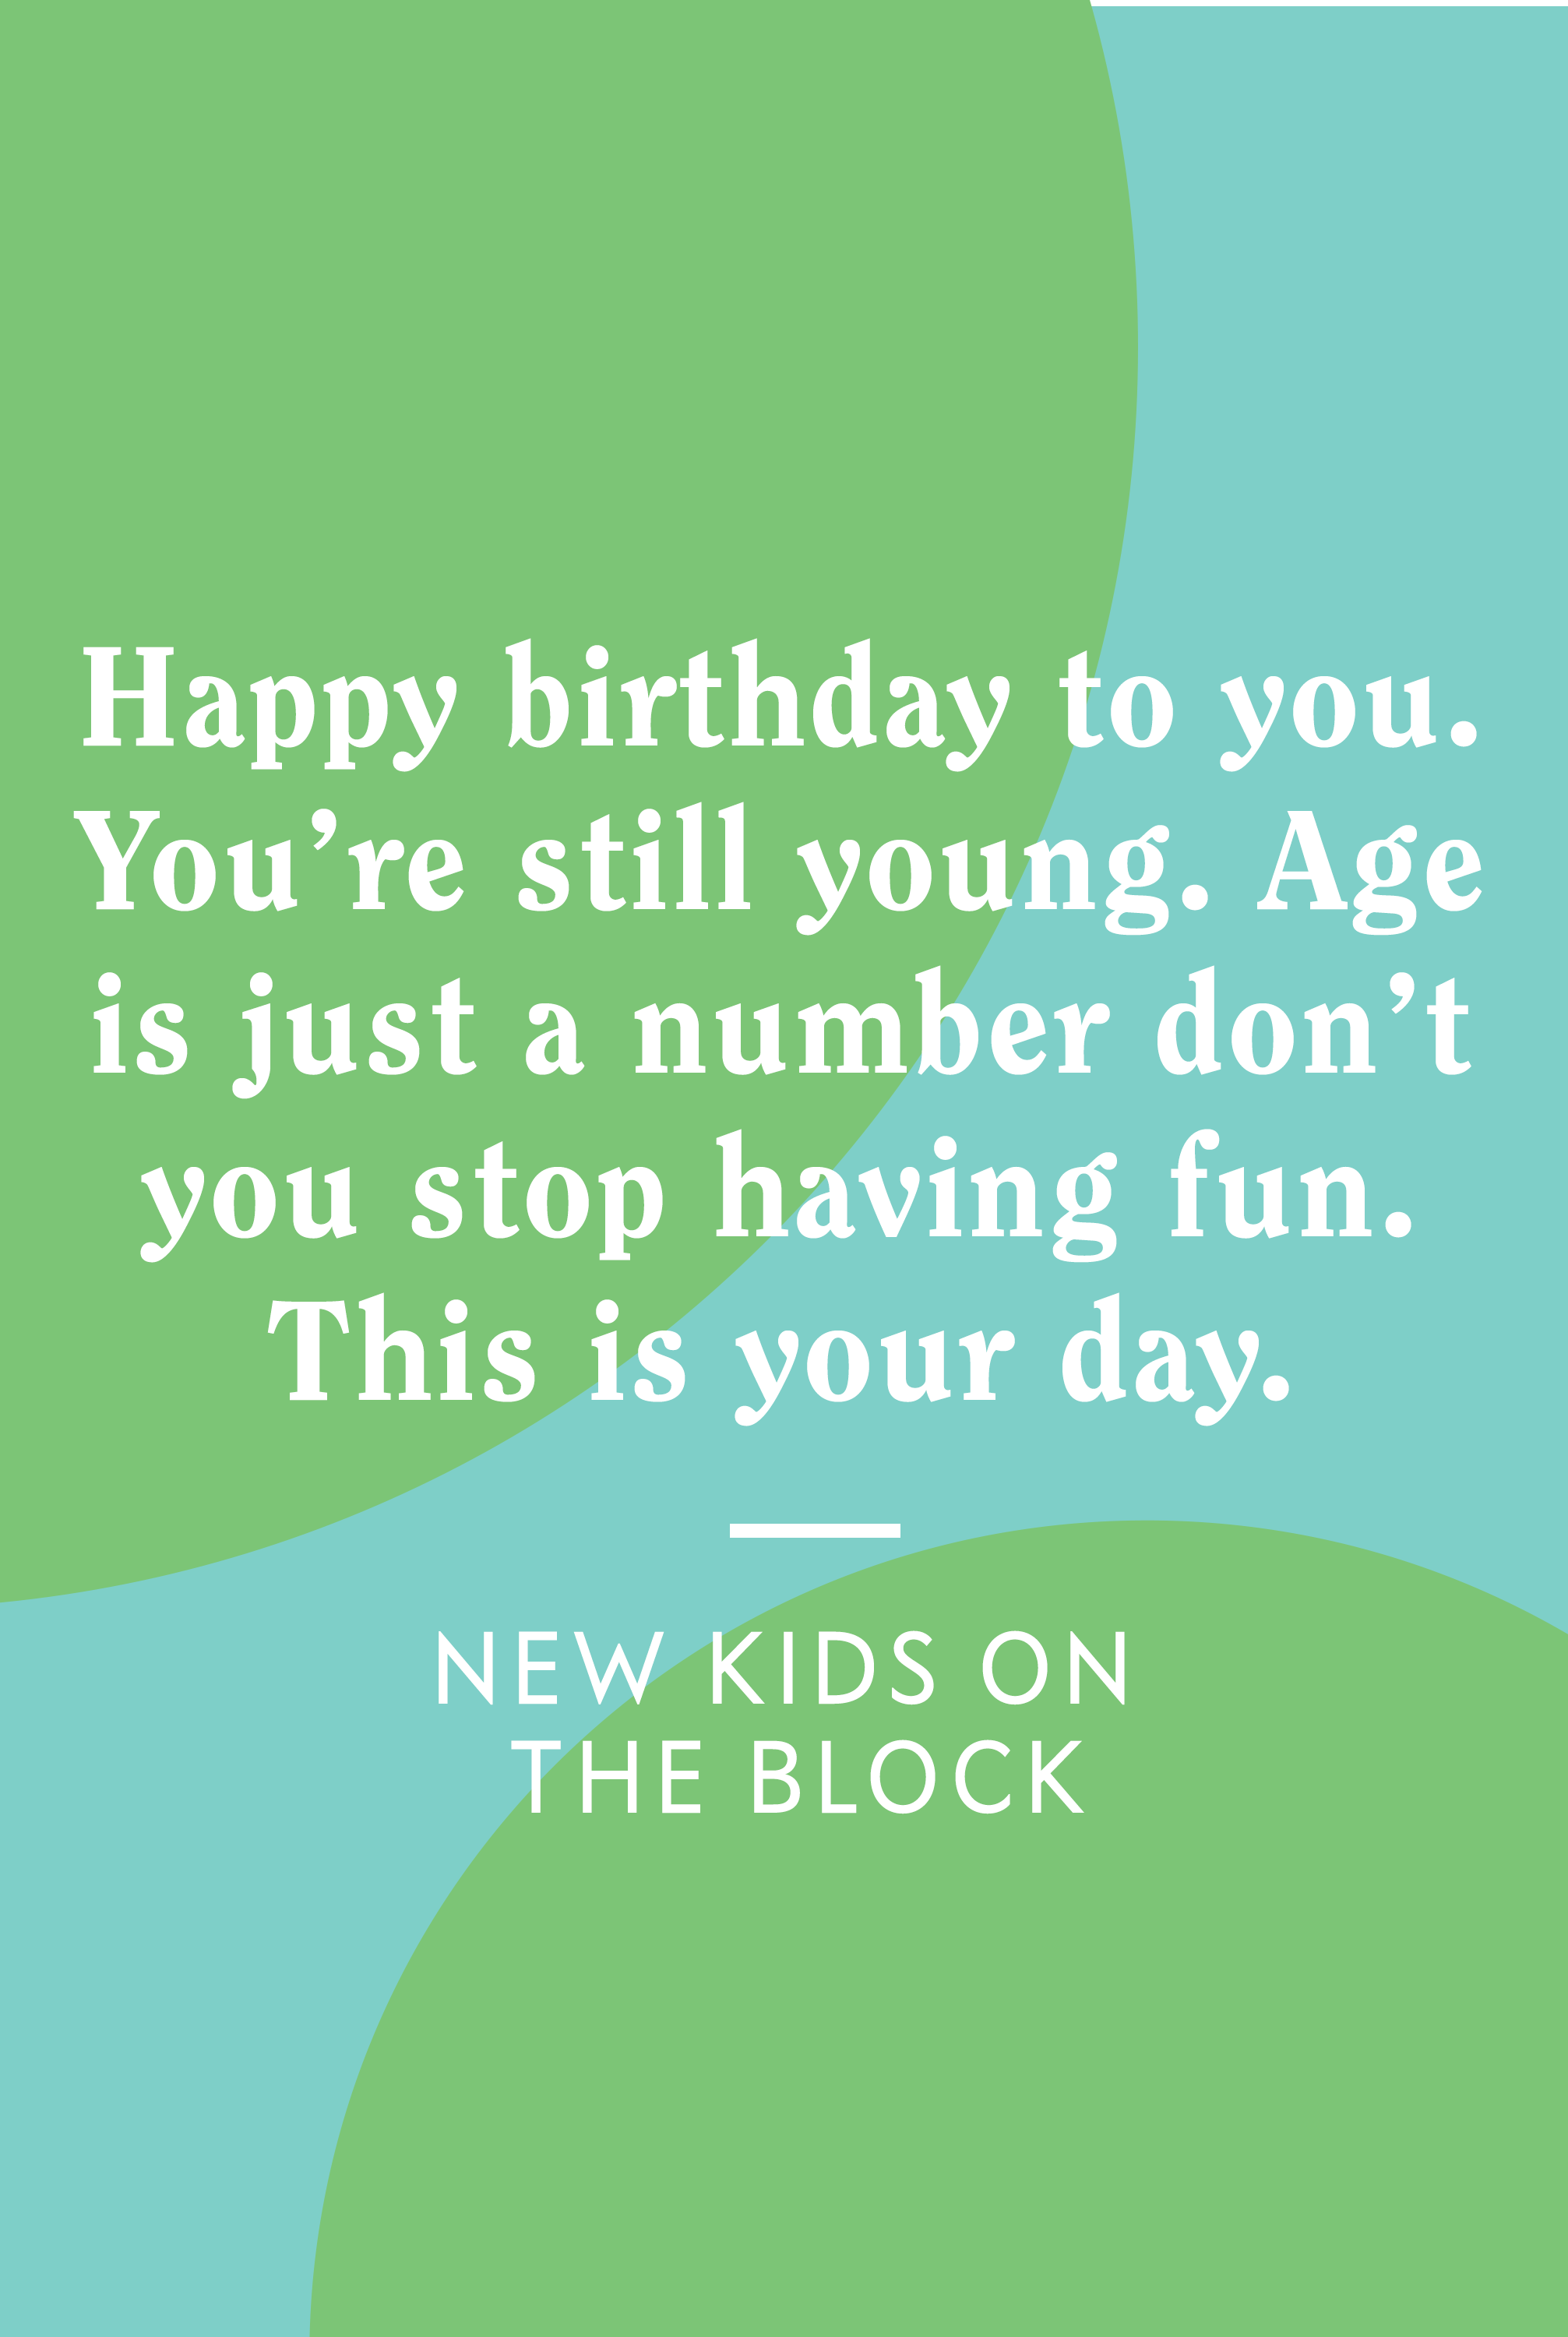 Sensational 20 Birthday Quotes And Messages For Every Person In Your Life Funny Birthday Cards Online Alyptdamsfinfo